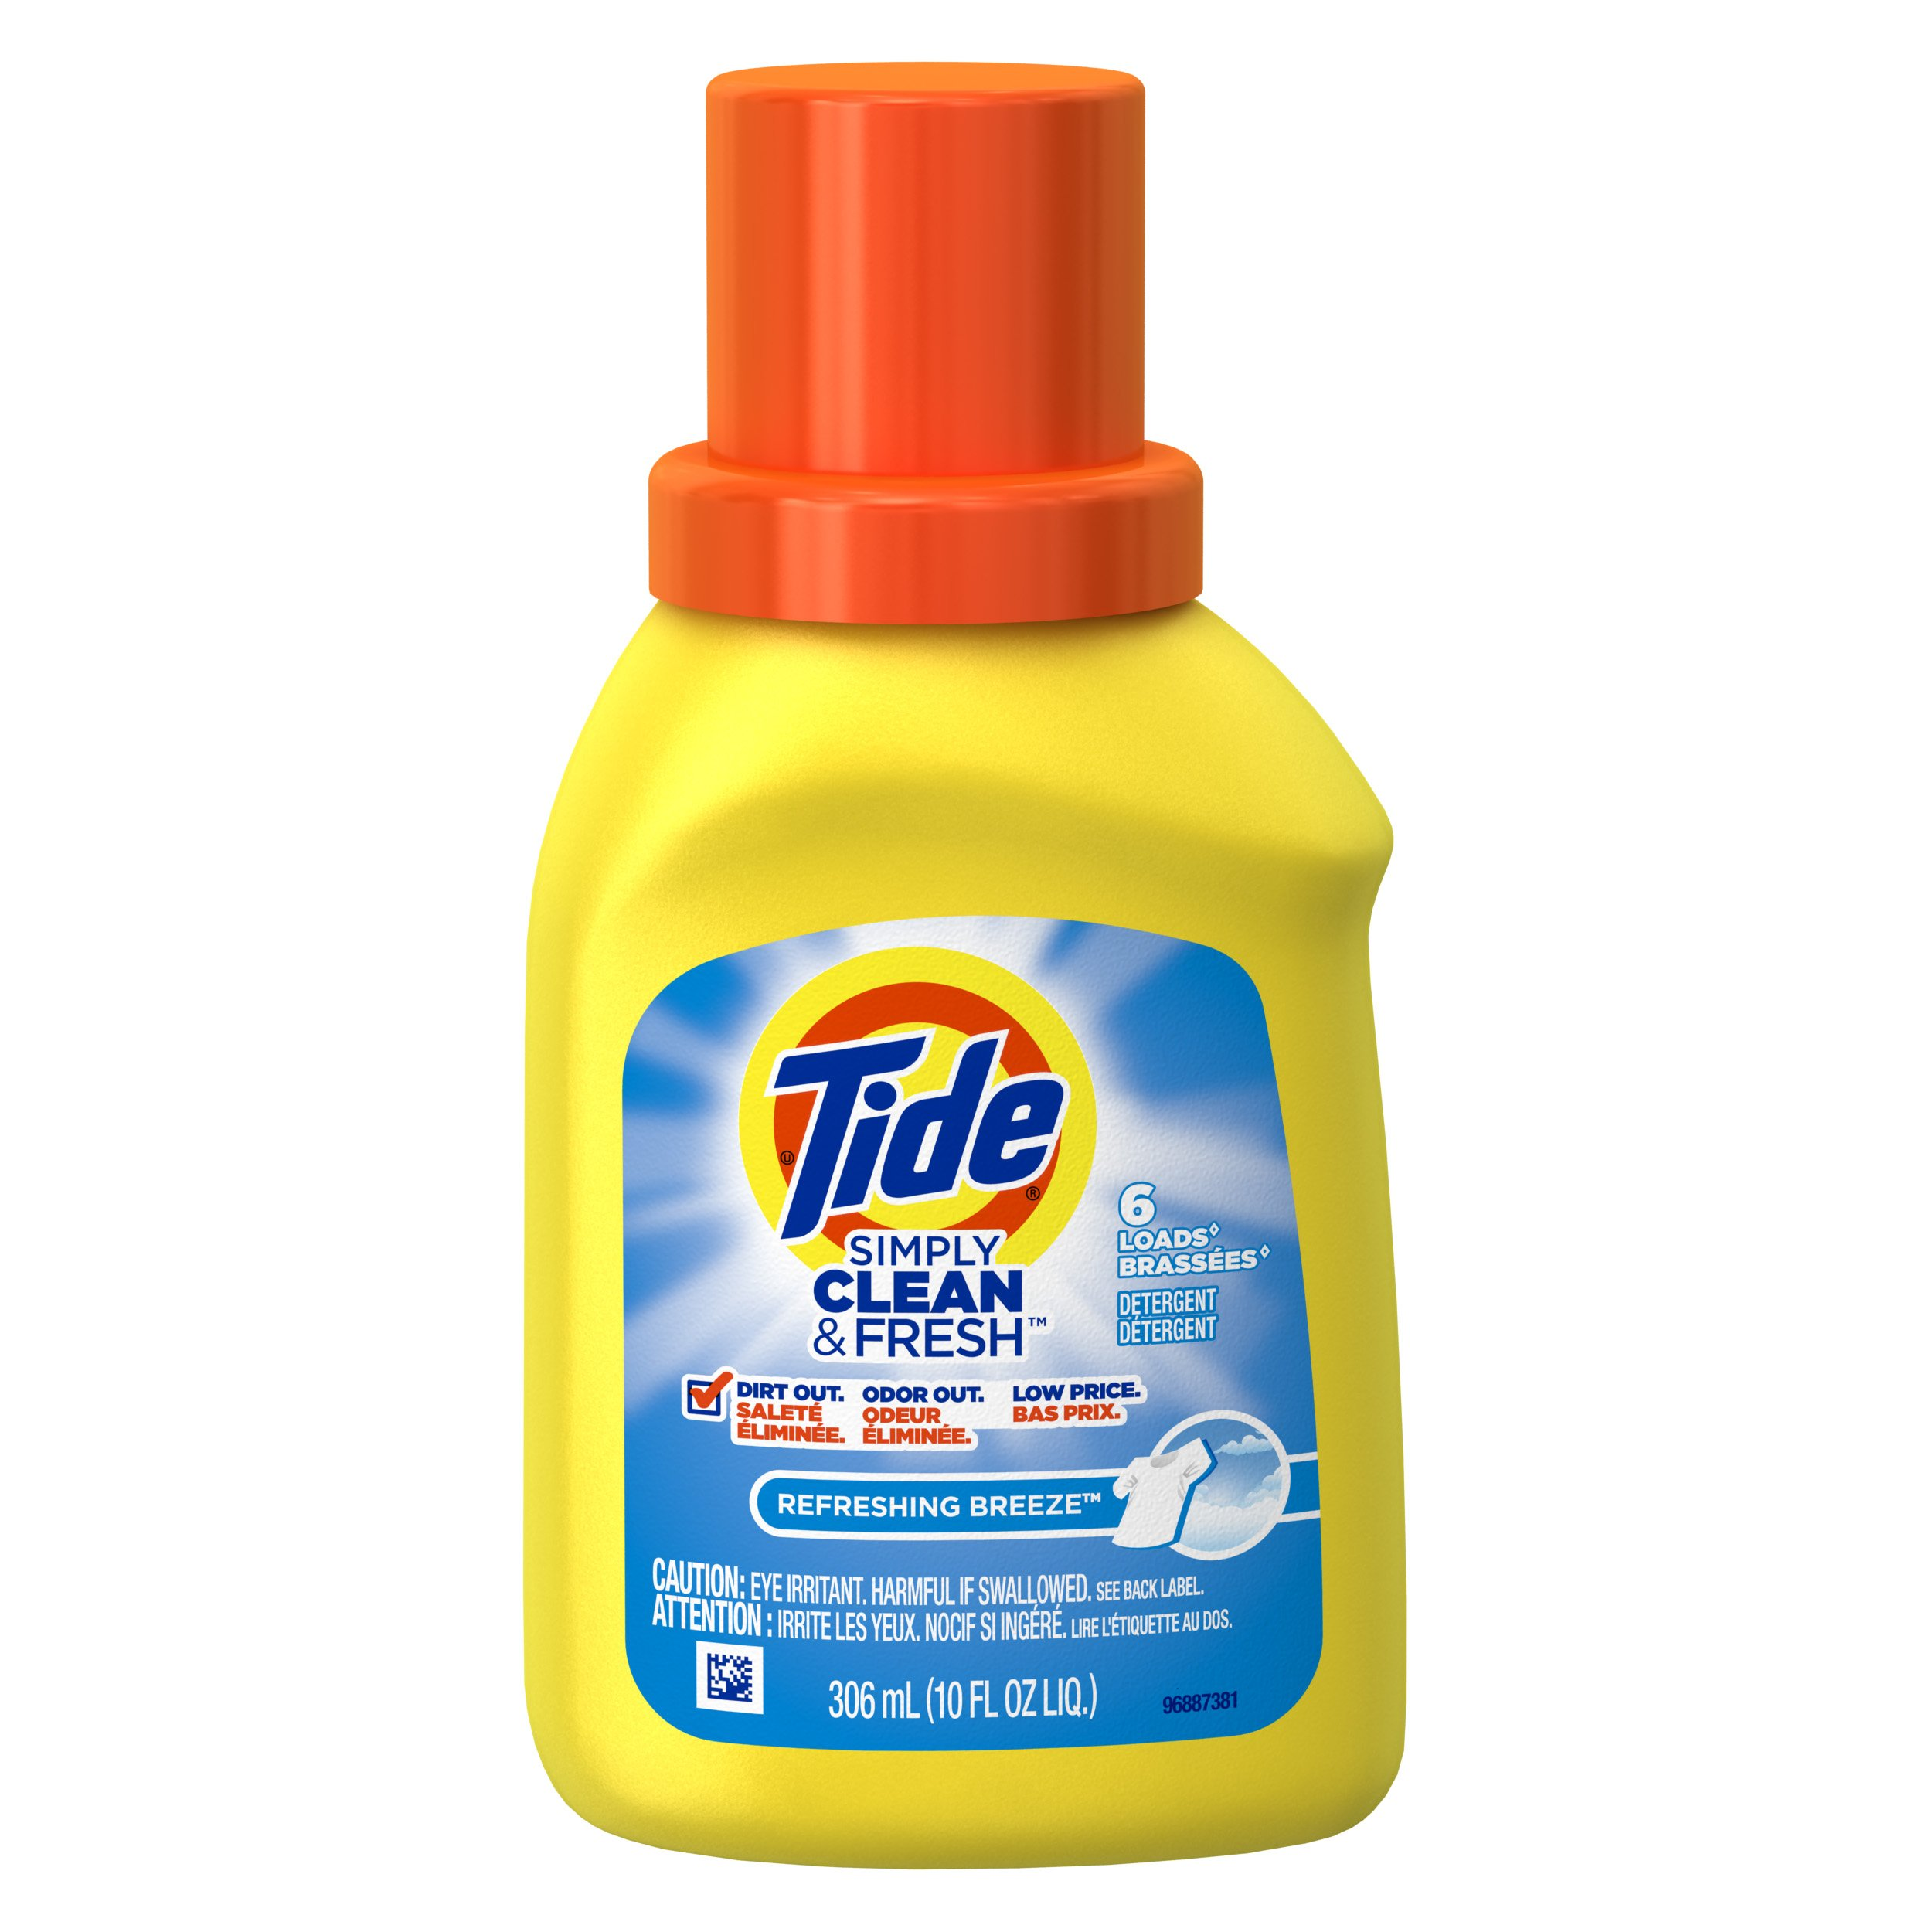 Amazon.com: Travel Size Tide 10oz Refreshing Breeze Laundry Detergent (Pack of 2): Health & Personal Care